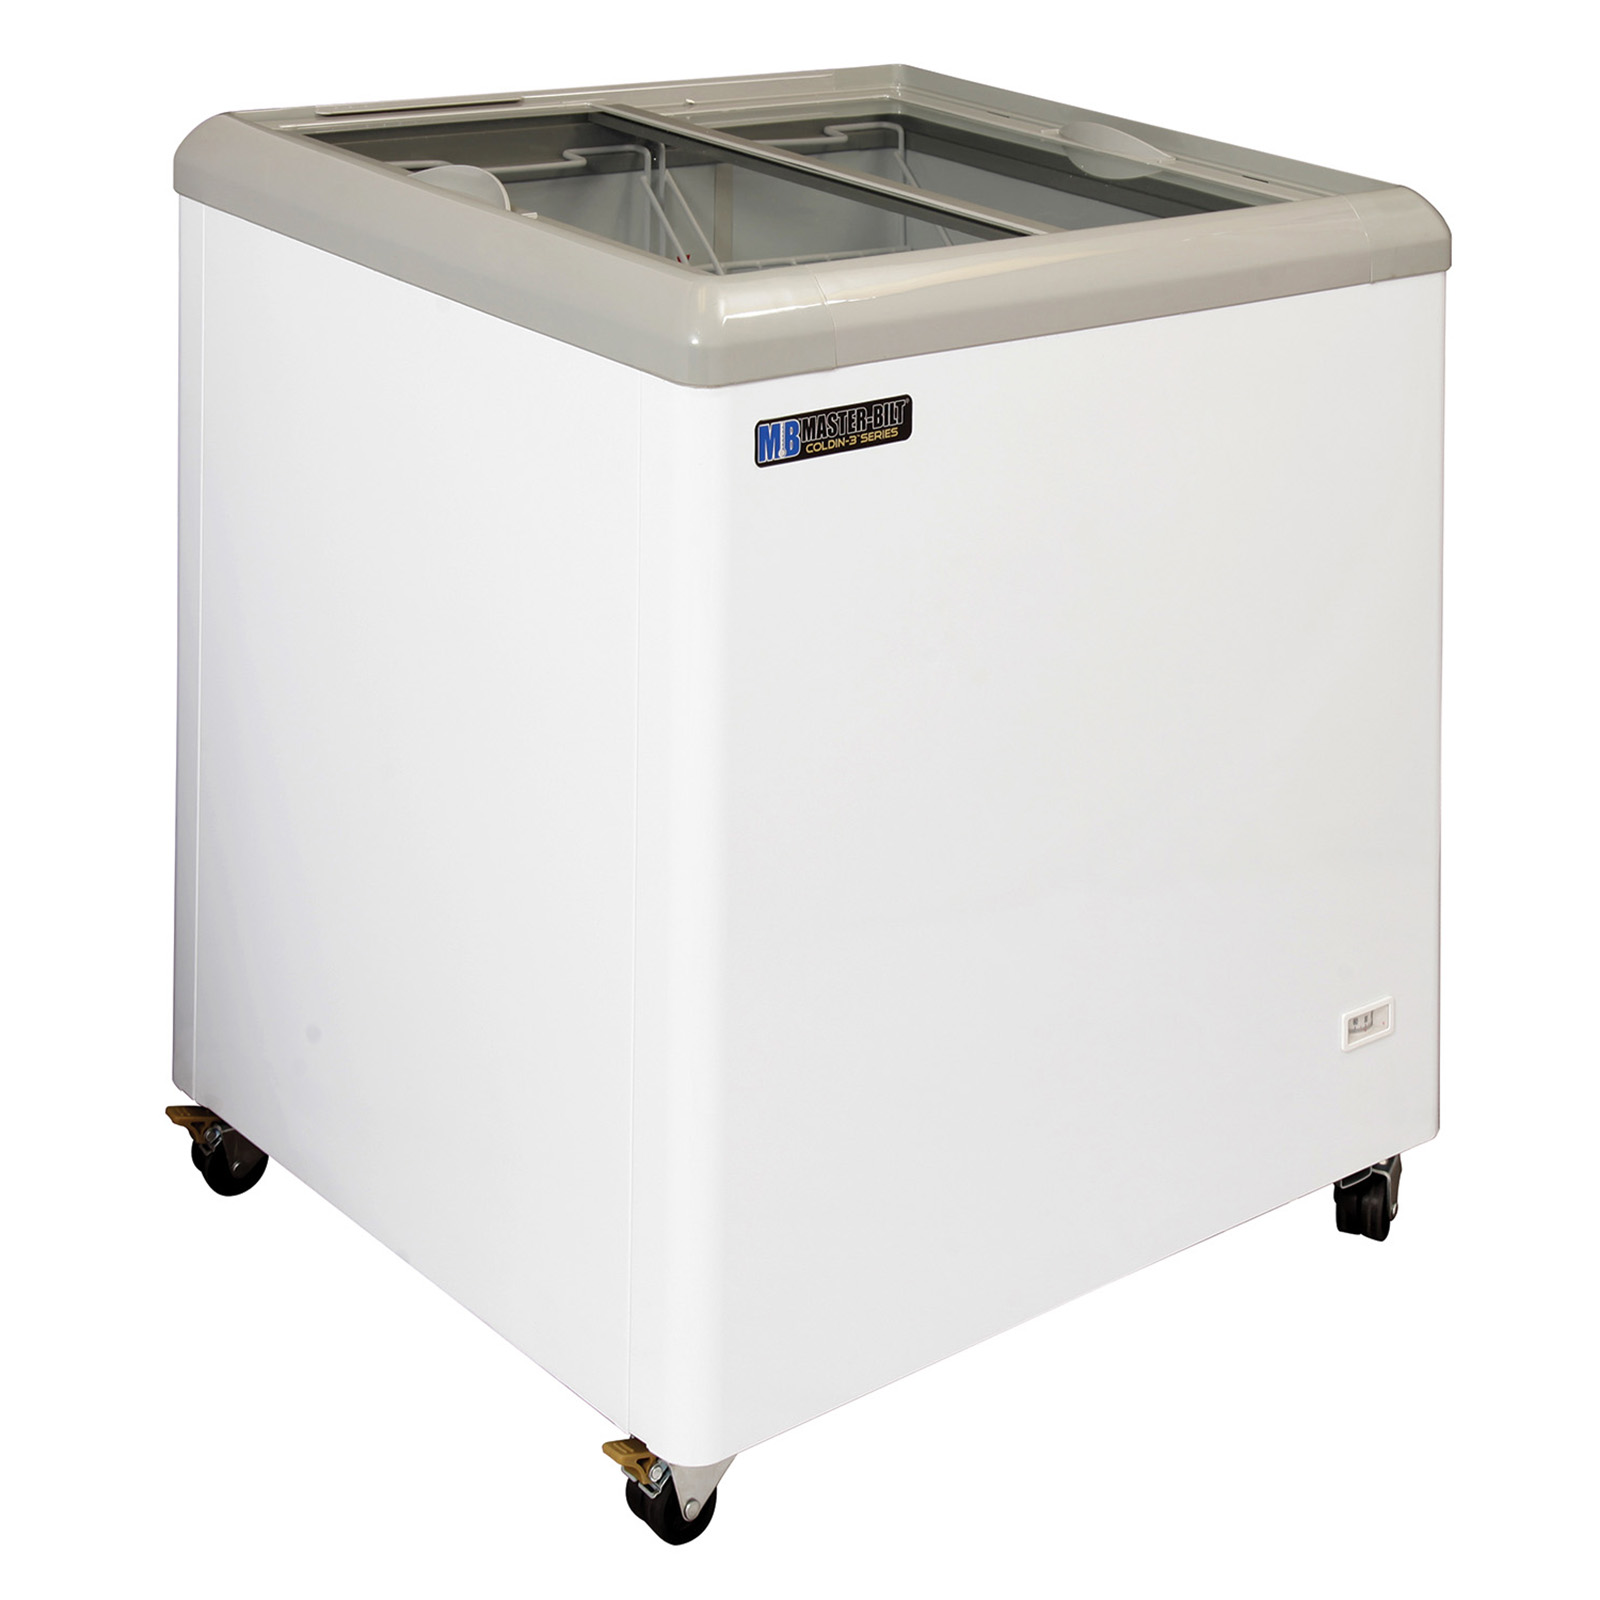 Master-Bilt Products MSF-31AN chest freezer